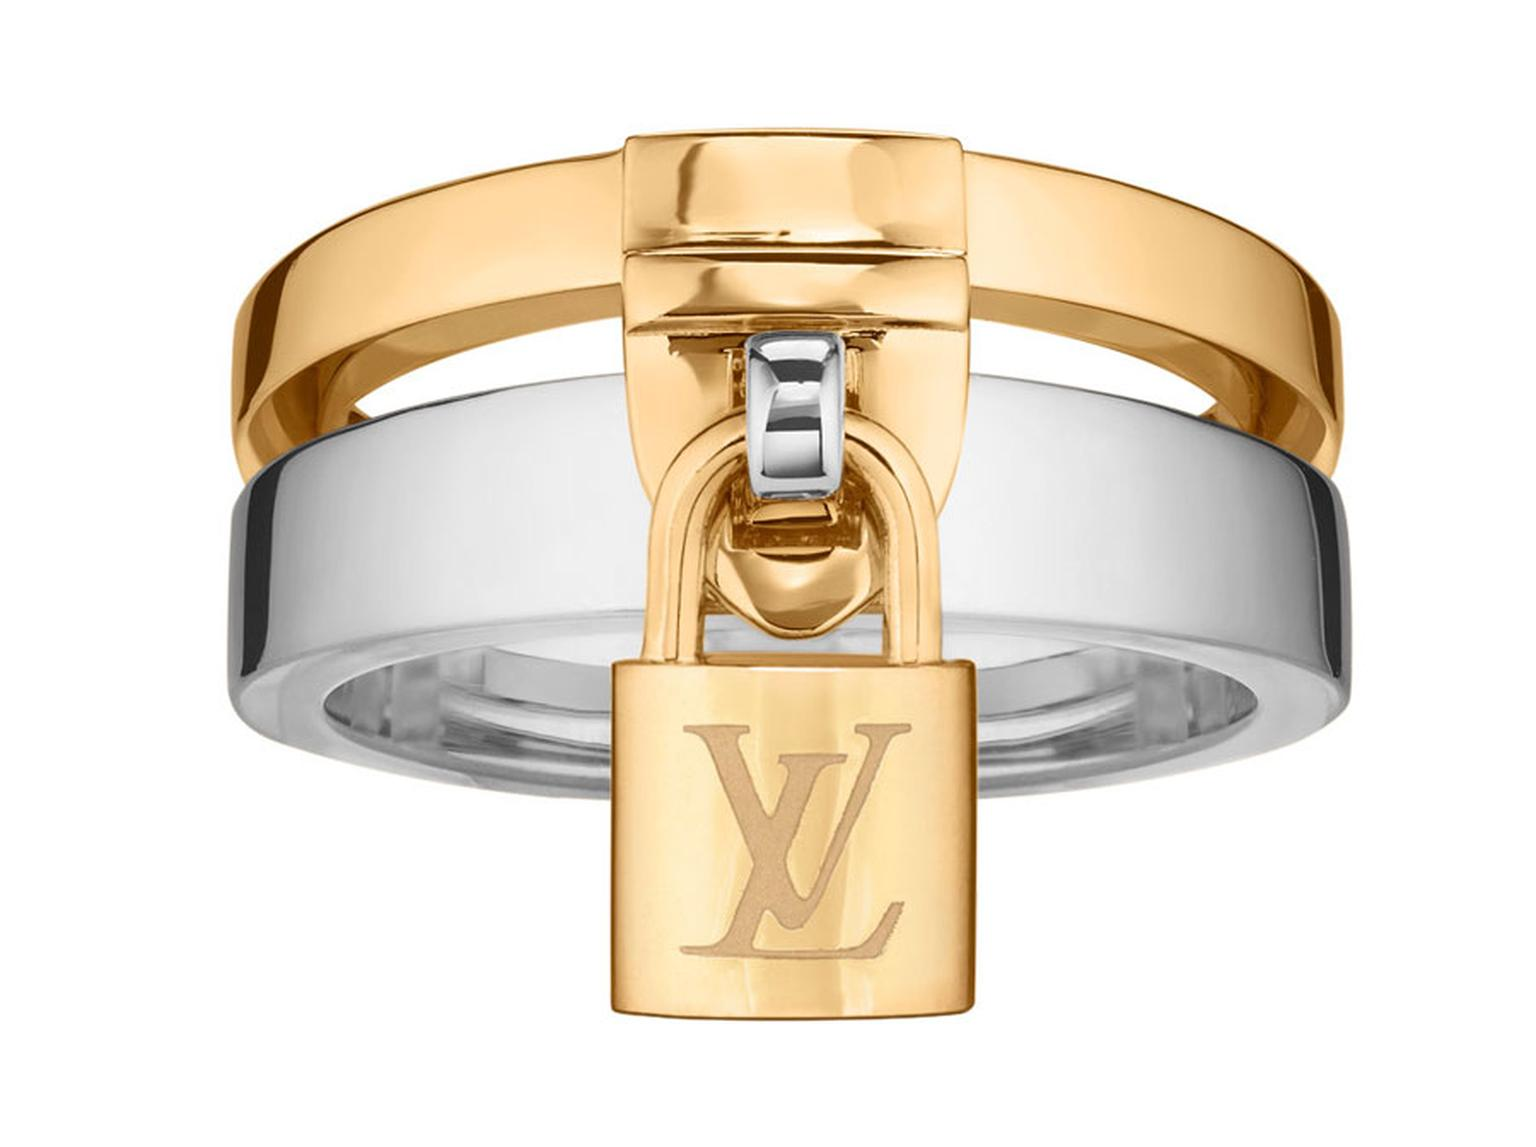 Louis-Vuitton-_BAGUE-LOCKIT-GM-BICO---Vue-de-face-